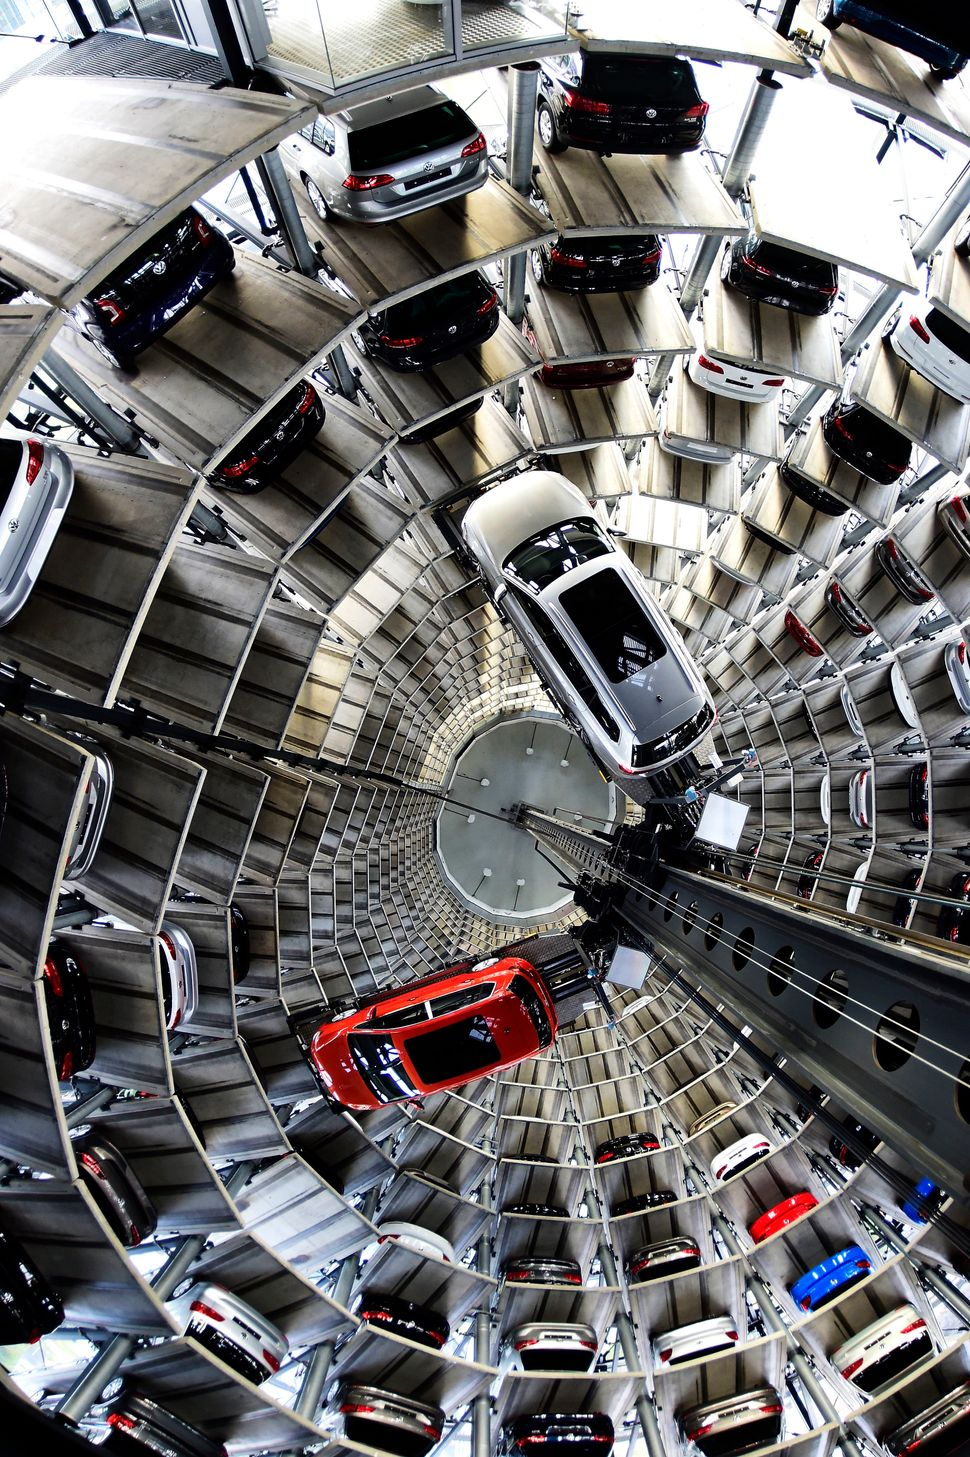 A brand new Volkswagen Passat and a Golf 7 car are stored in a tower at the Volkswagen Autostadt complex near the Volkswagen